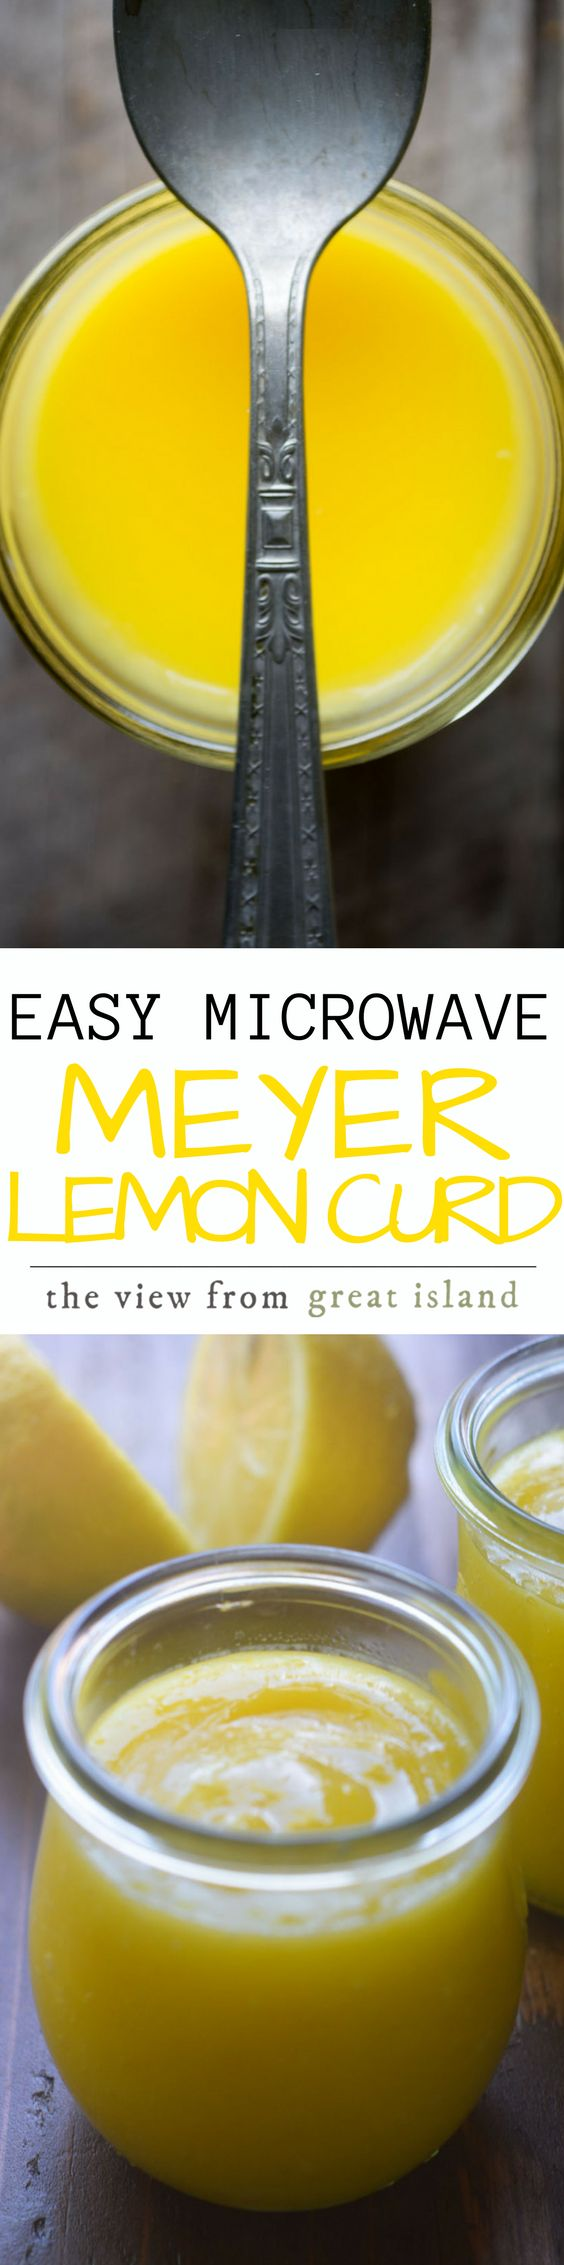 Easy Microwave Citrus Curd ~ turn any type of fresh citrus juice into a luxurious, creamy, spreadable curd in 5 minutes, using your microwave!  | breakfast | jam | lemon curd | orange curd | grapefruit curd | blood orange curd | Meyer lemons